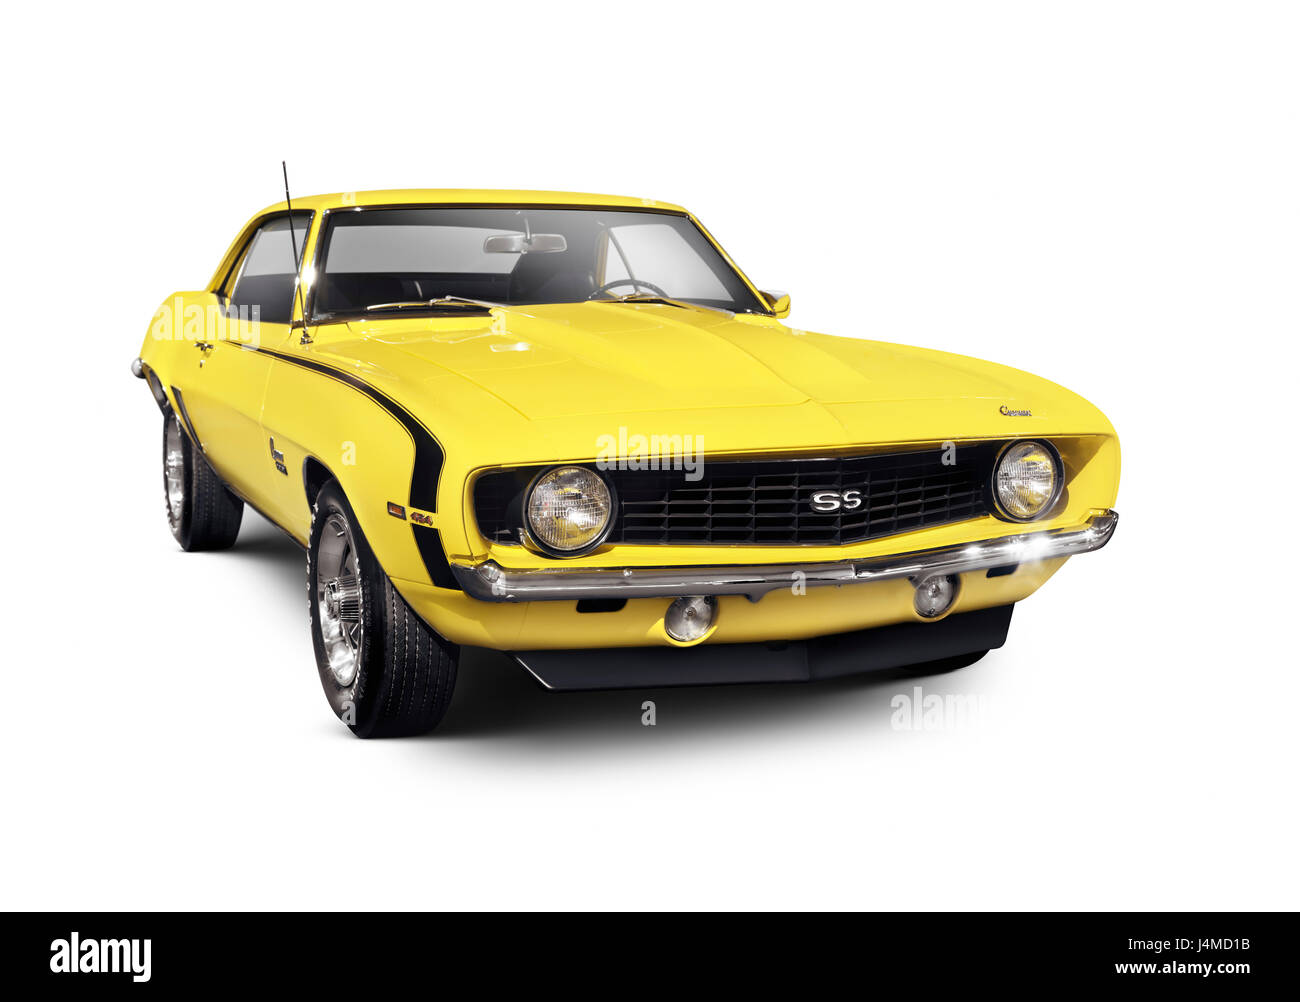 Yellow 1969 Chevrolet Camaro Ss Classic Retro Sports Car